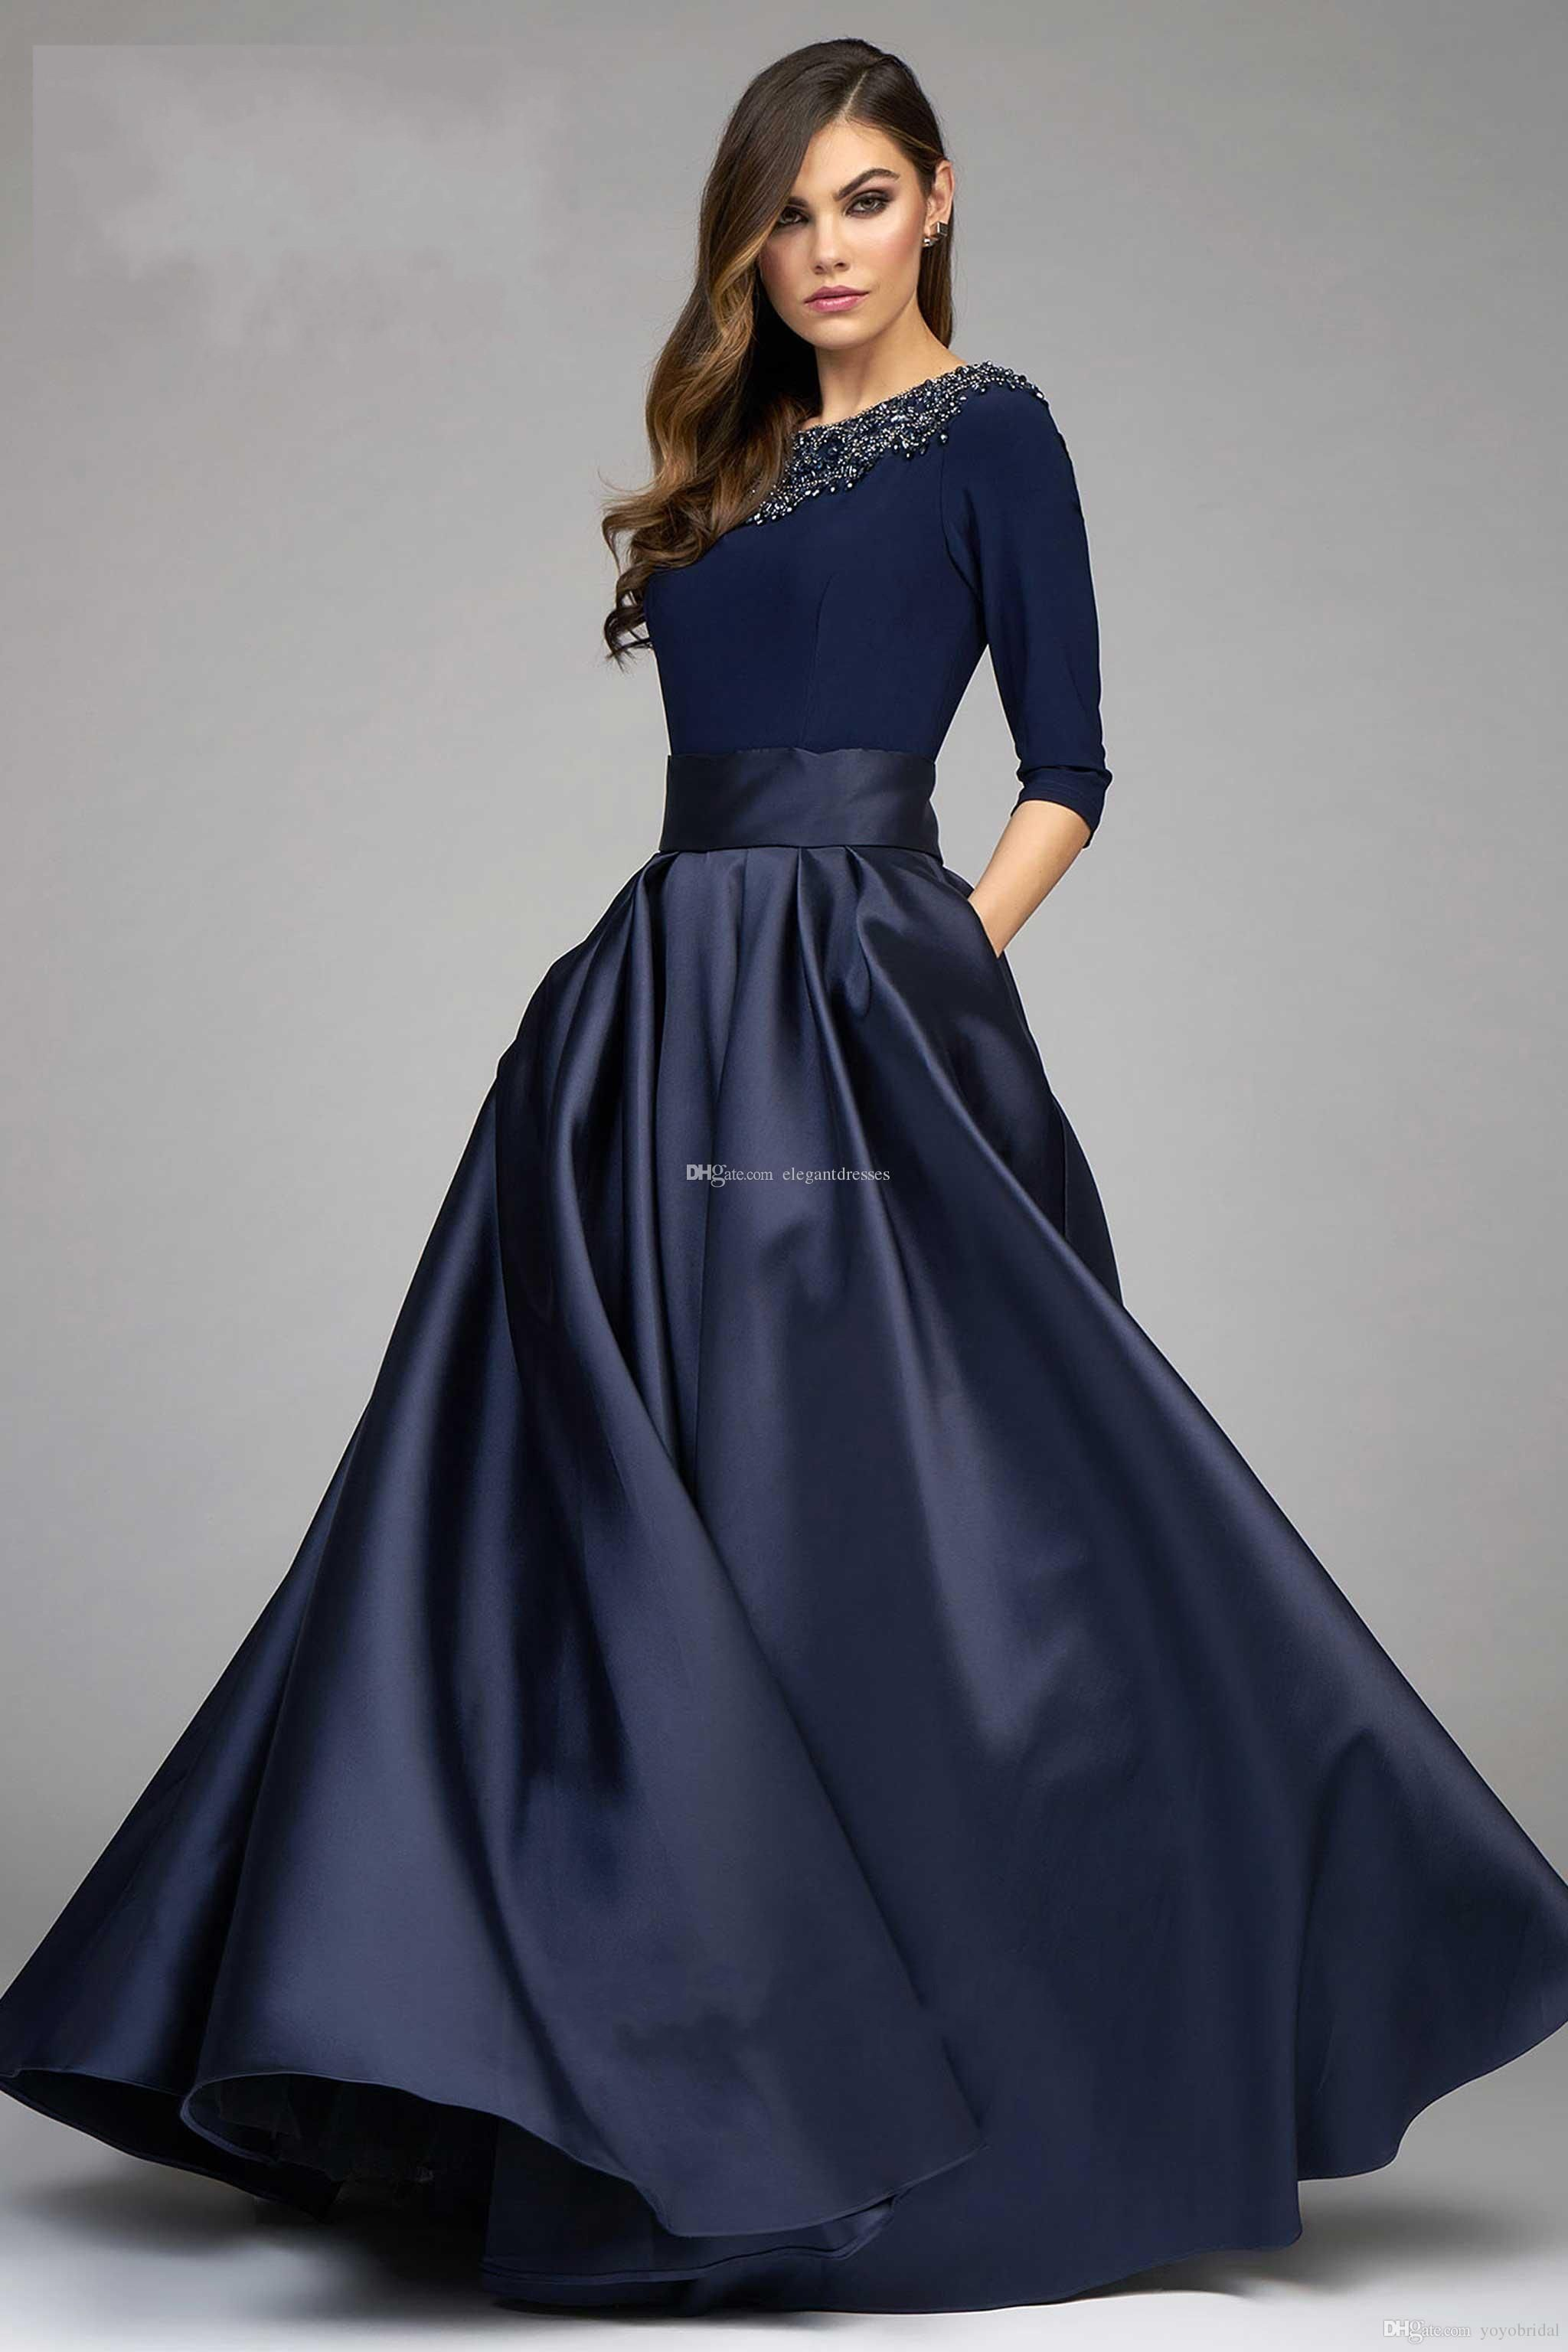 338c1b2775c Wholesale Mother Of The Groom Dress Long - Buy Cheap Mother Of The Groom  Dress Long from Chinese Wholesalers